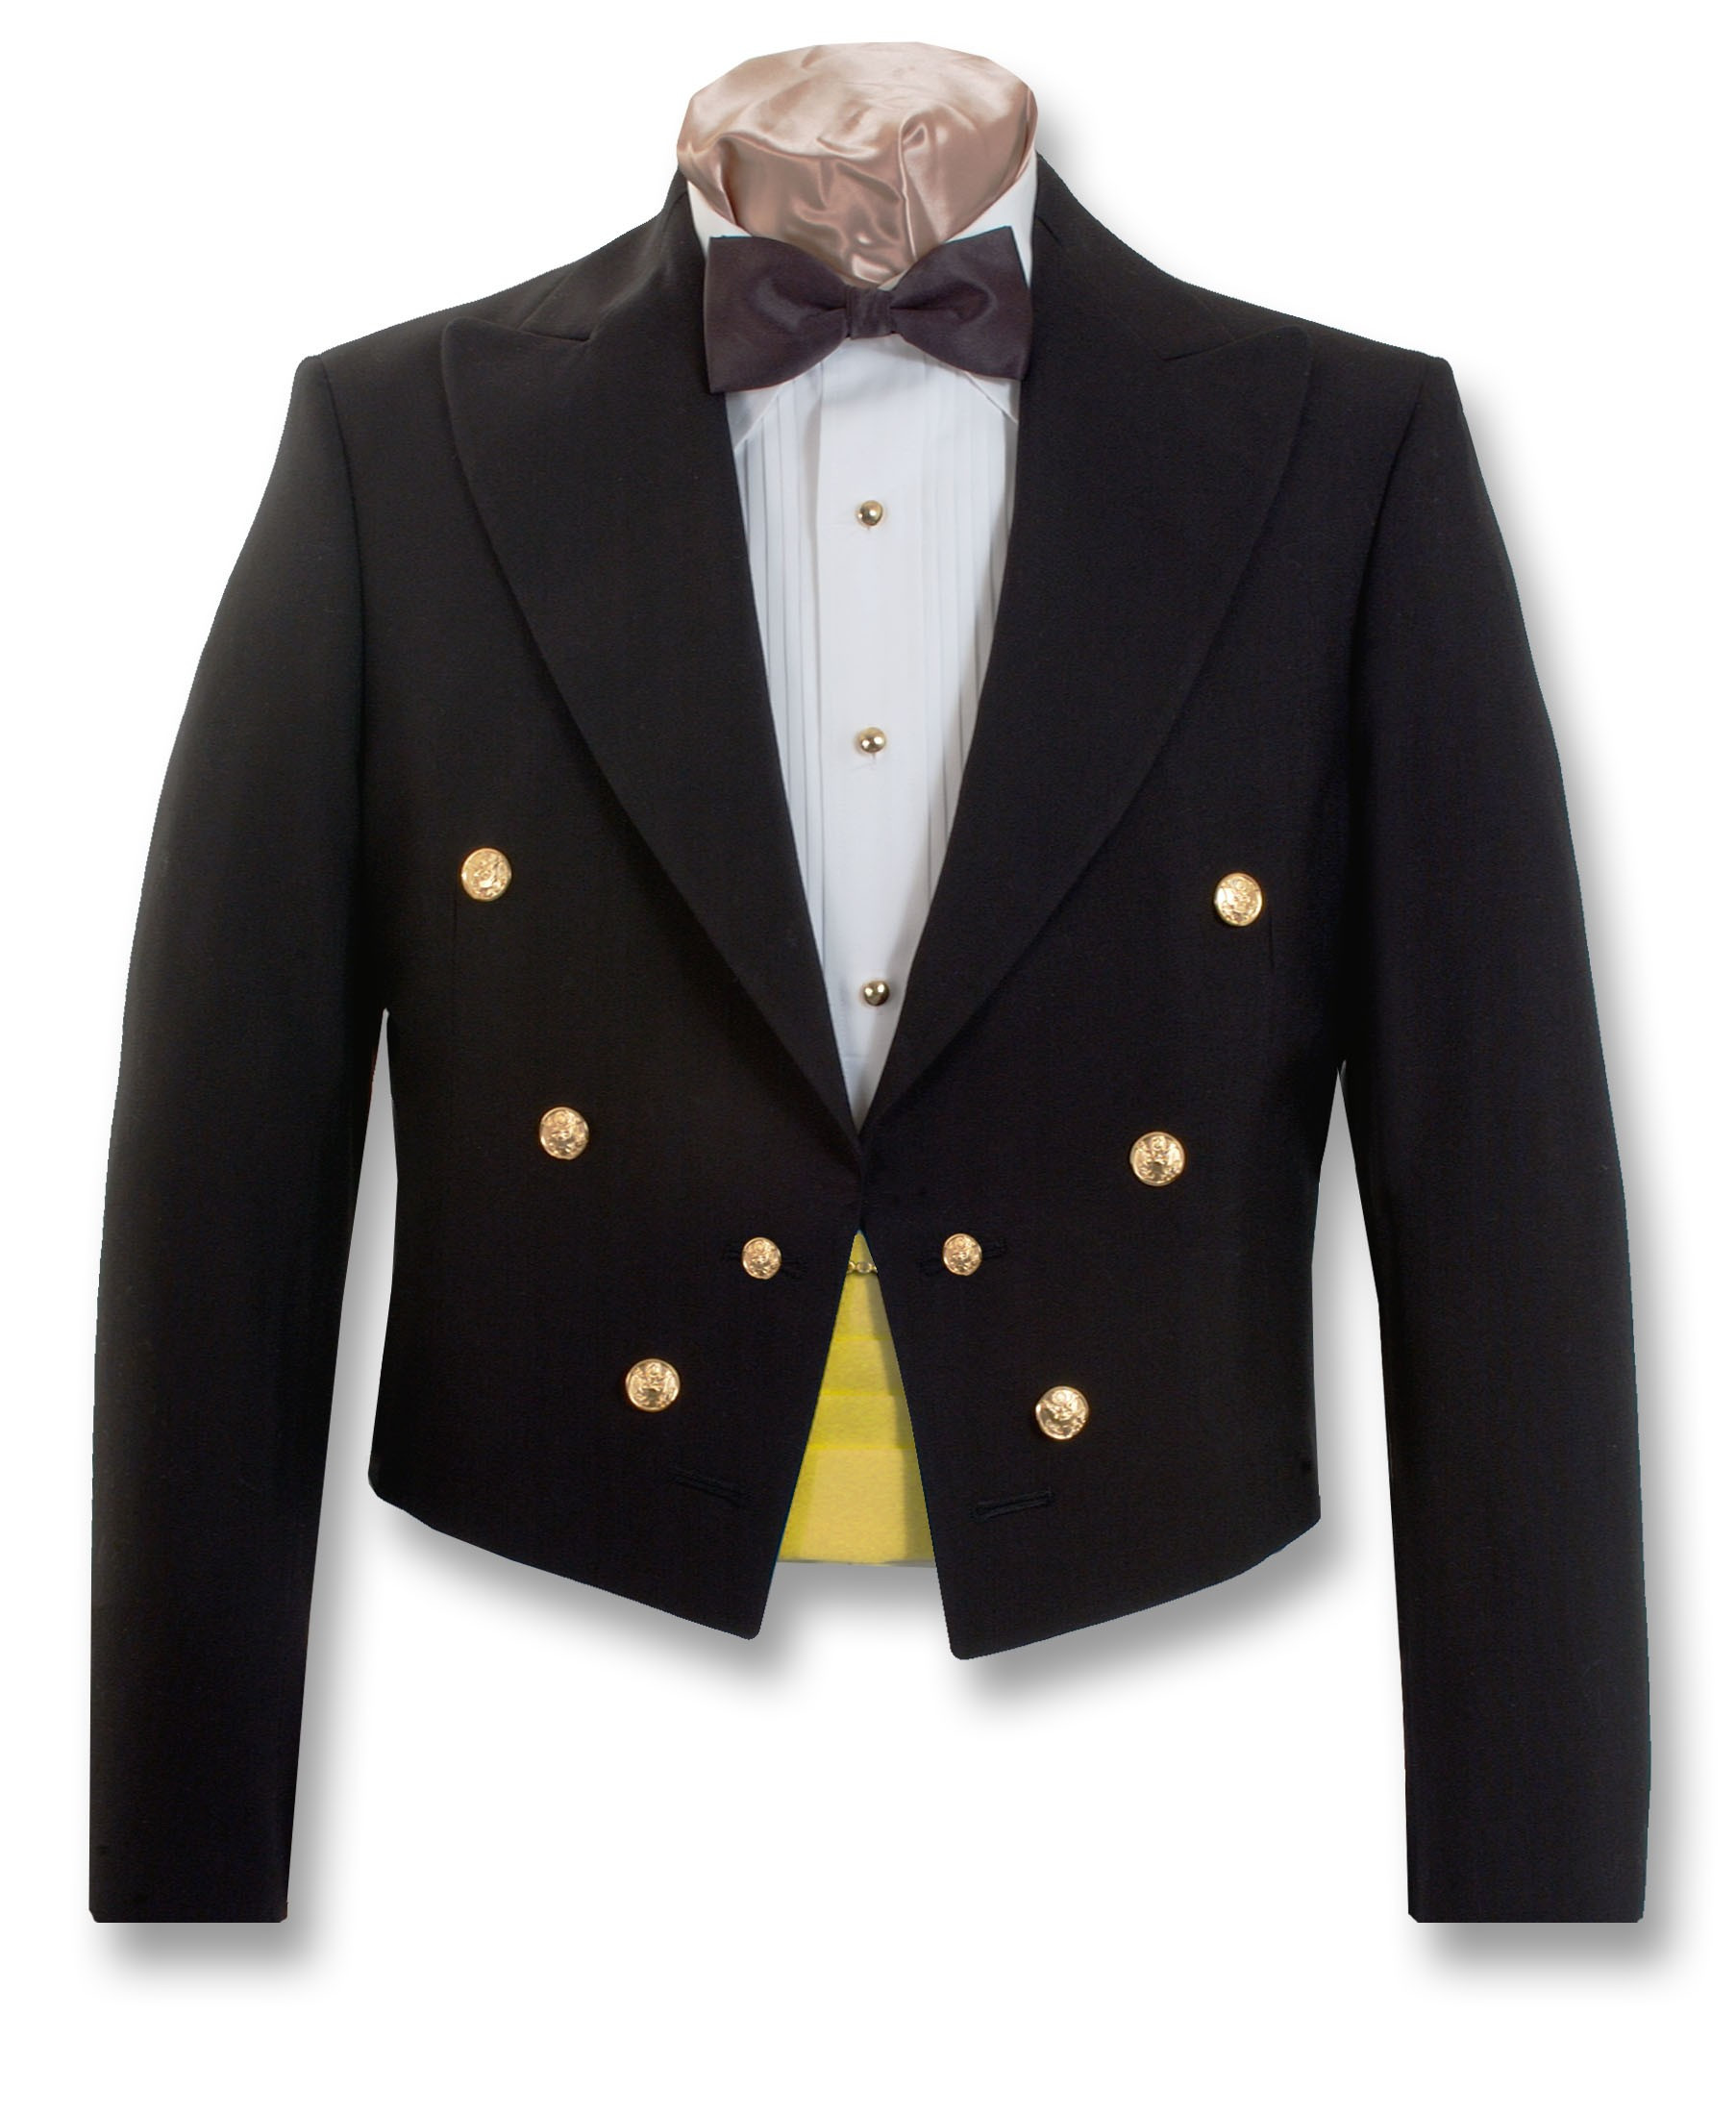 Dinner Dress Blues  USPHS Male Dinner Dress Blue Jacket